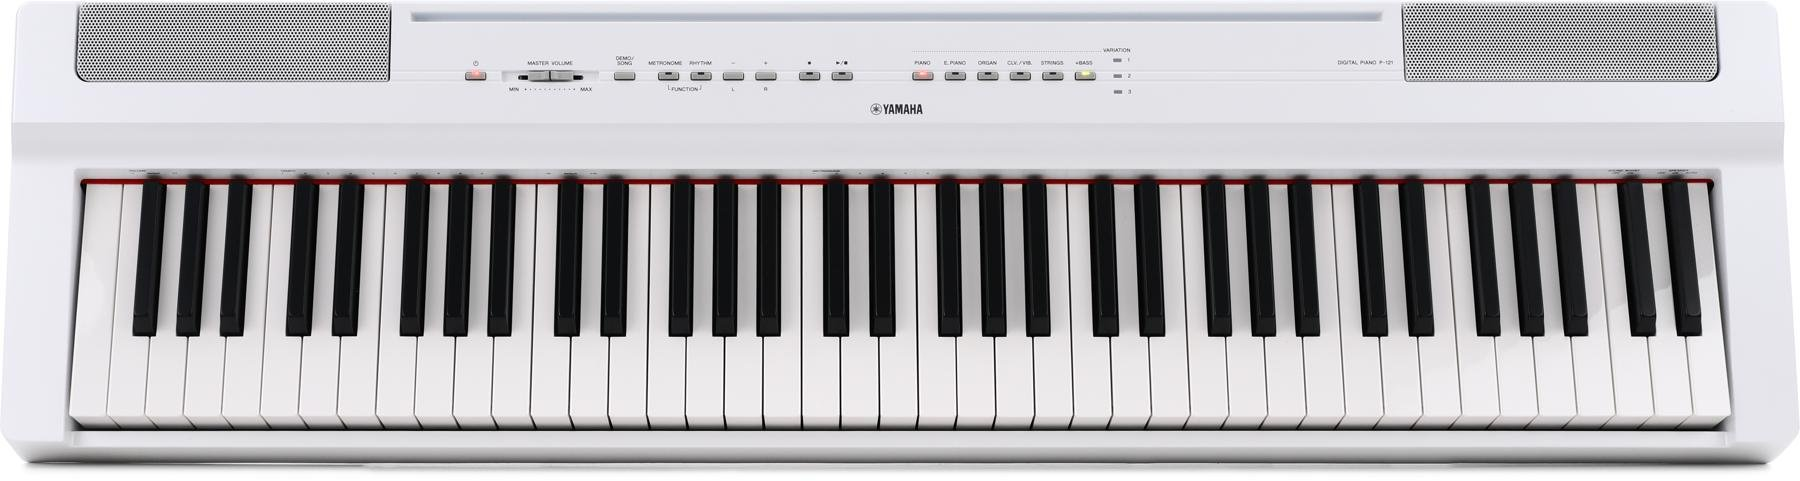 Yamaha P 121 Digital Piano White Sweetwater Theremin World Topic A Project From Glaacuk Image 1